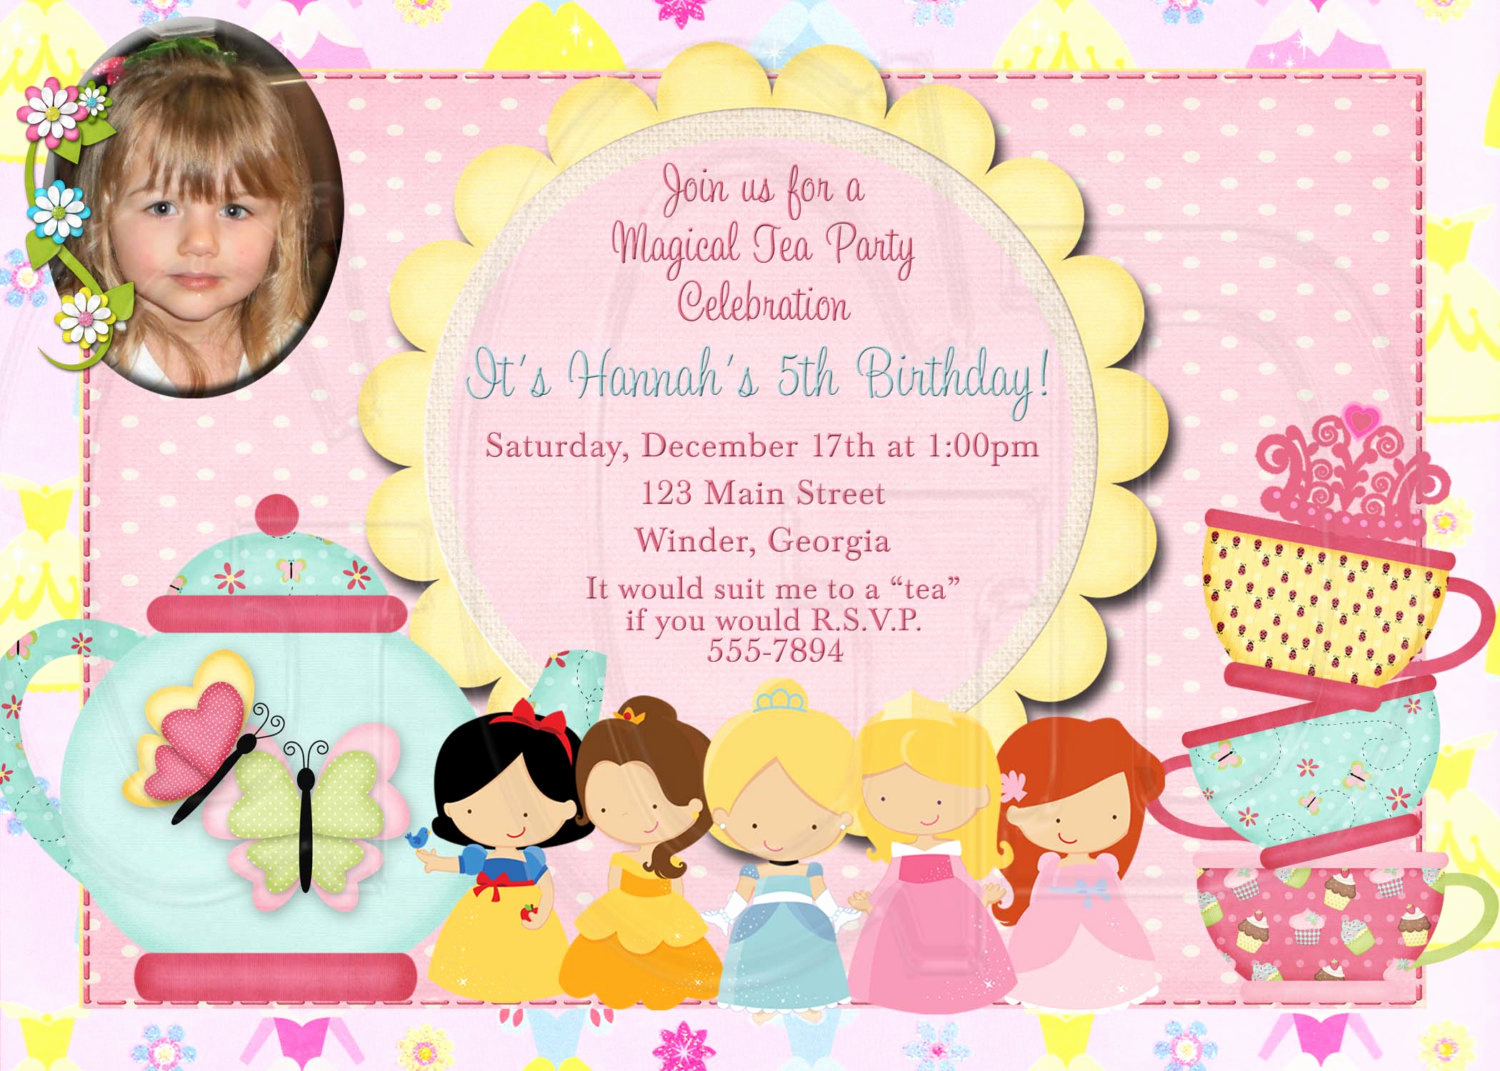 Invitation for Tea Party Awesome Tea Party Invitation Birthday Princess Tea Digital File